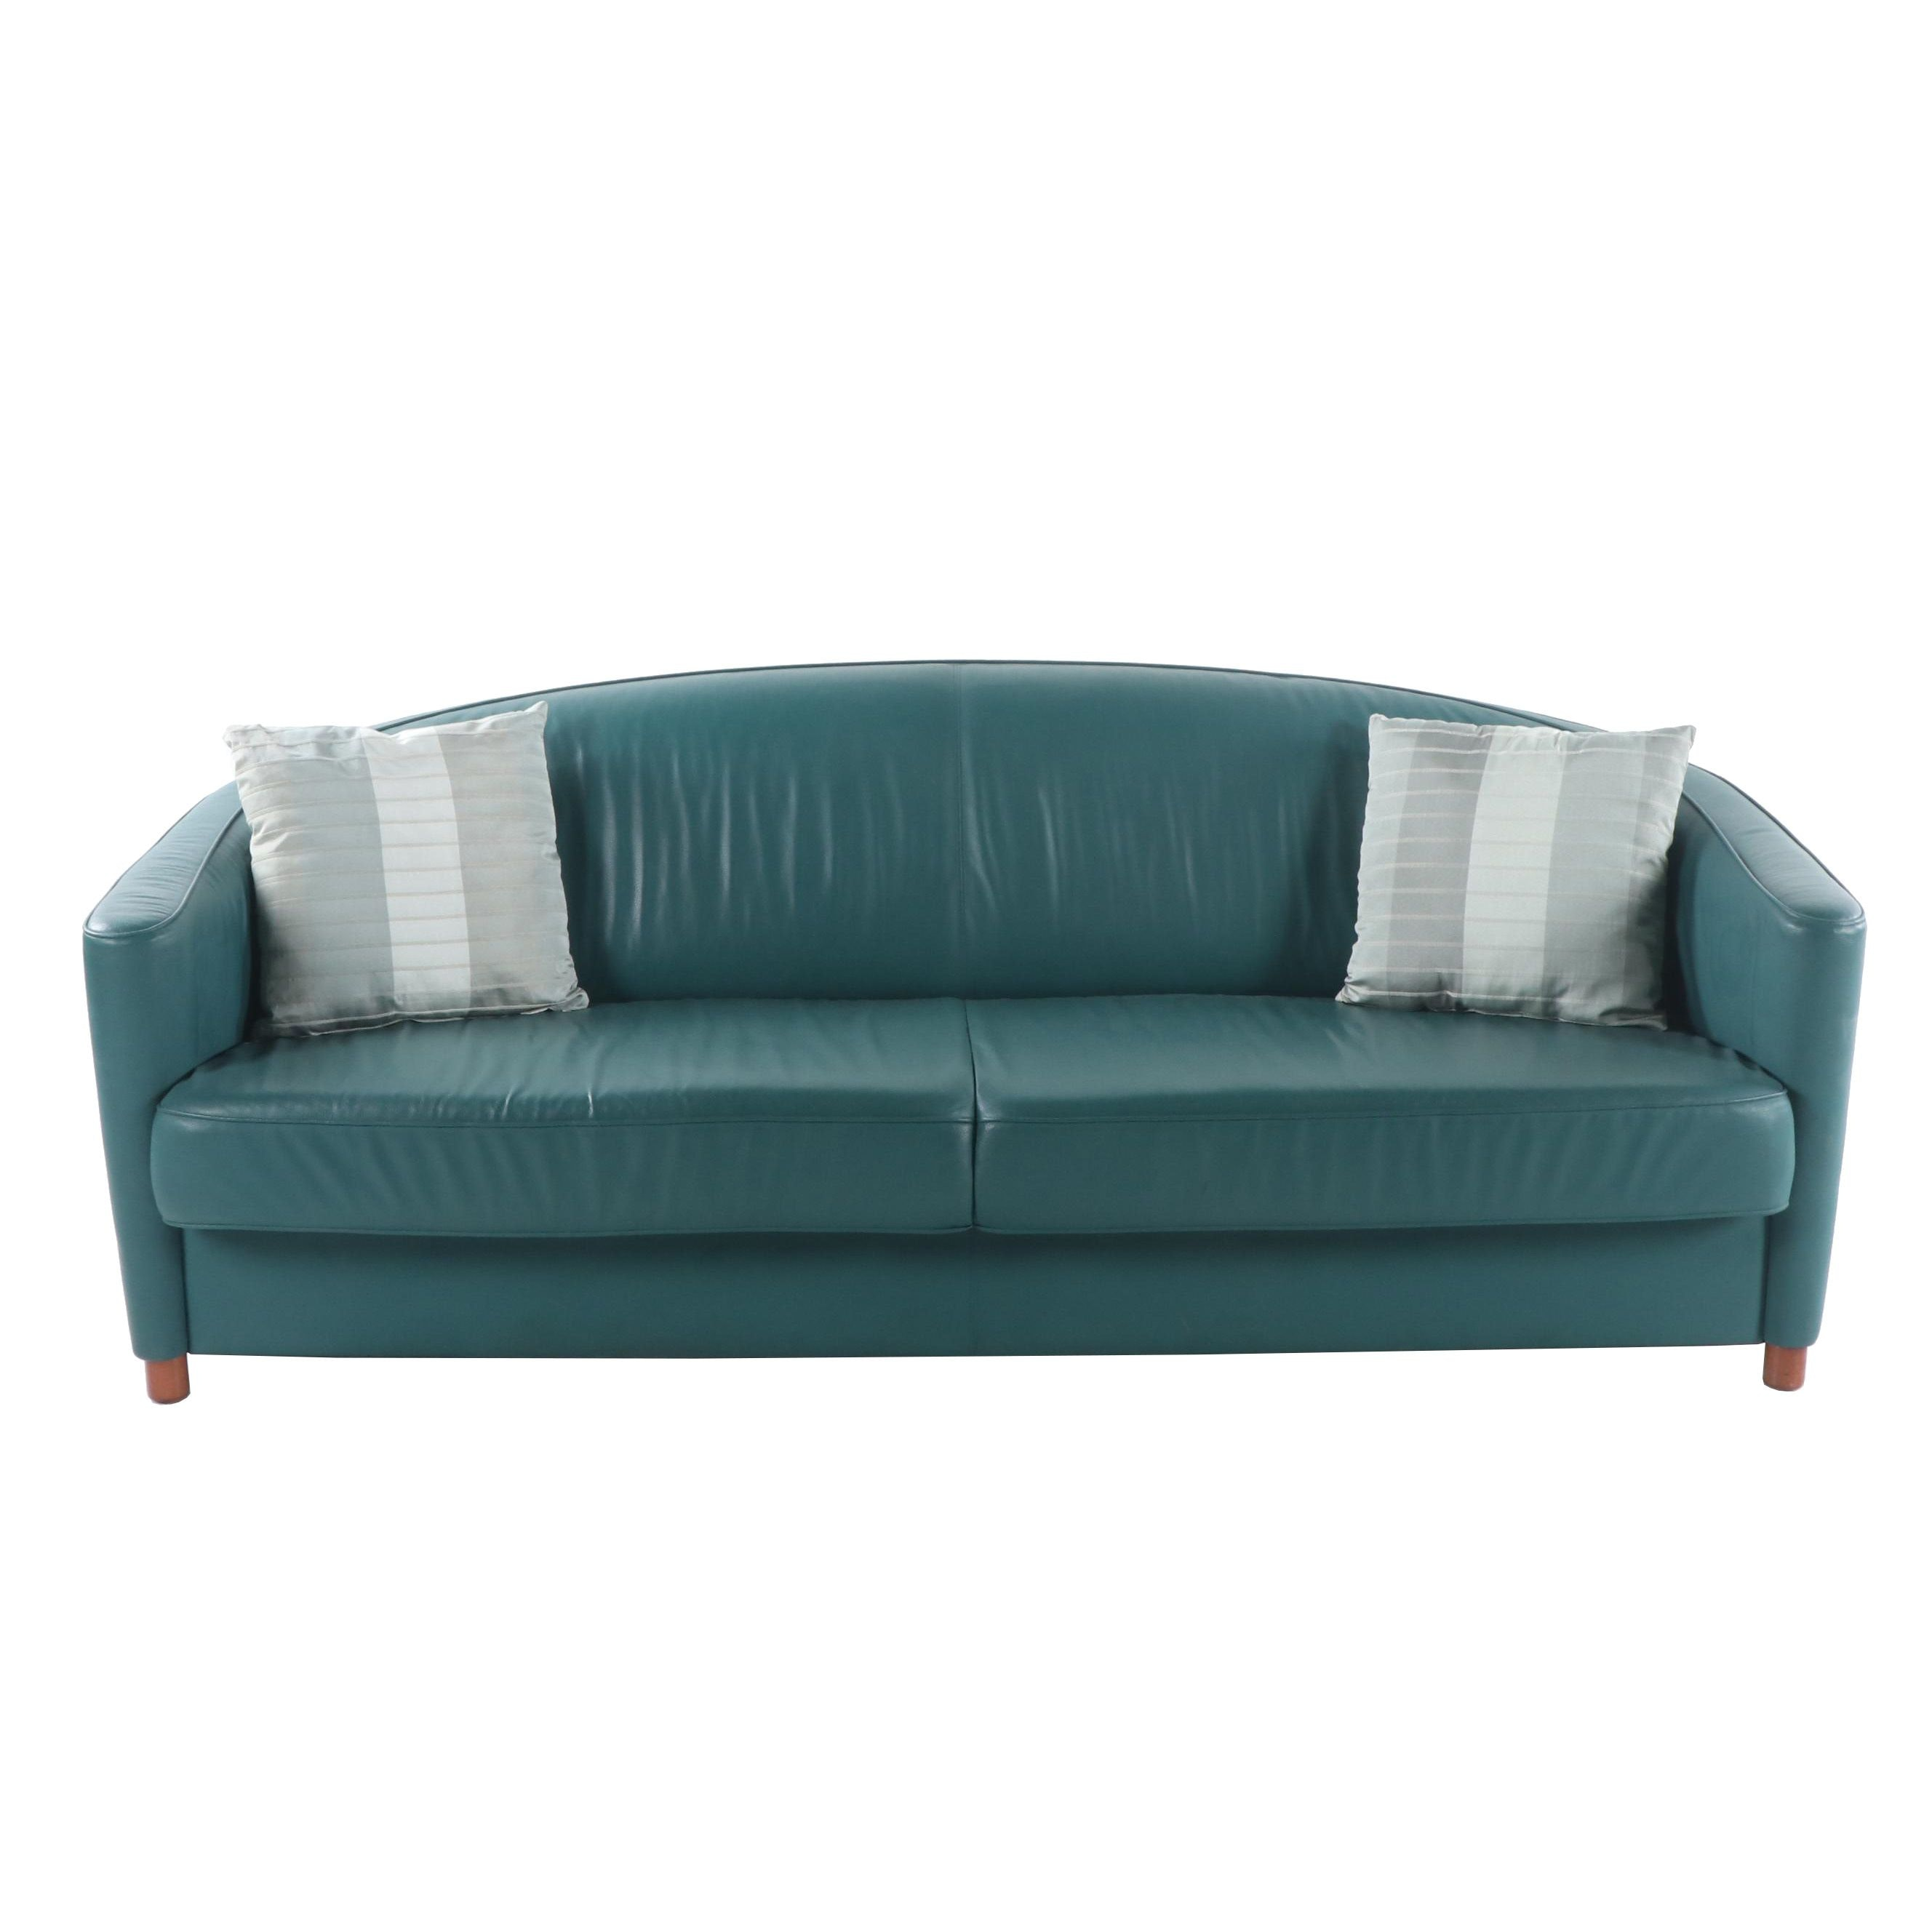 Faux Leather Sofa with Soft Impressions Throw Pillows, 21st Century